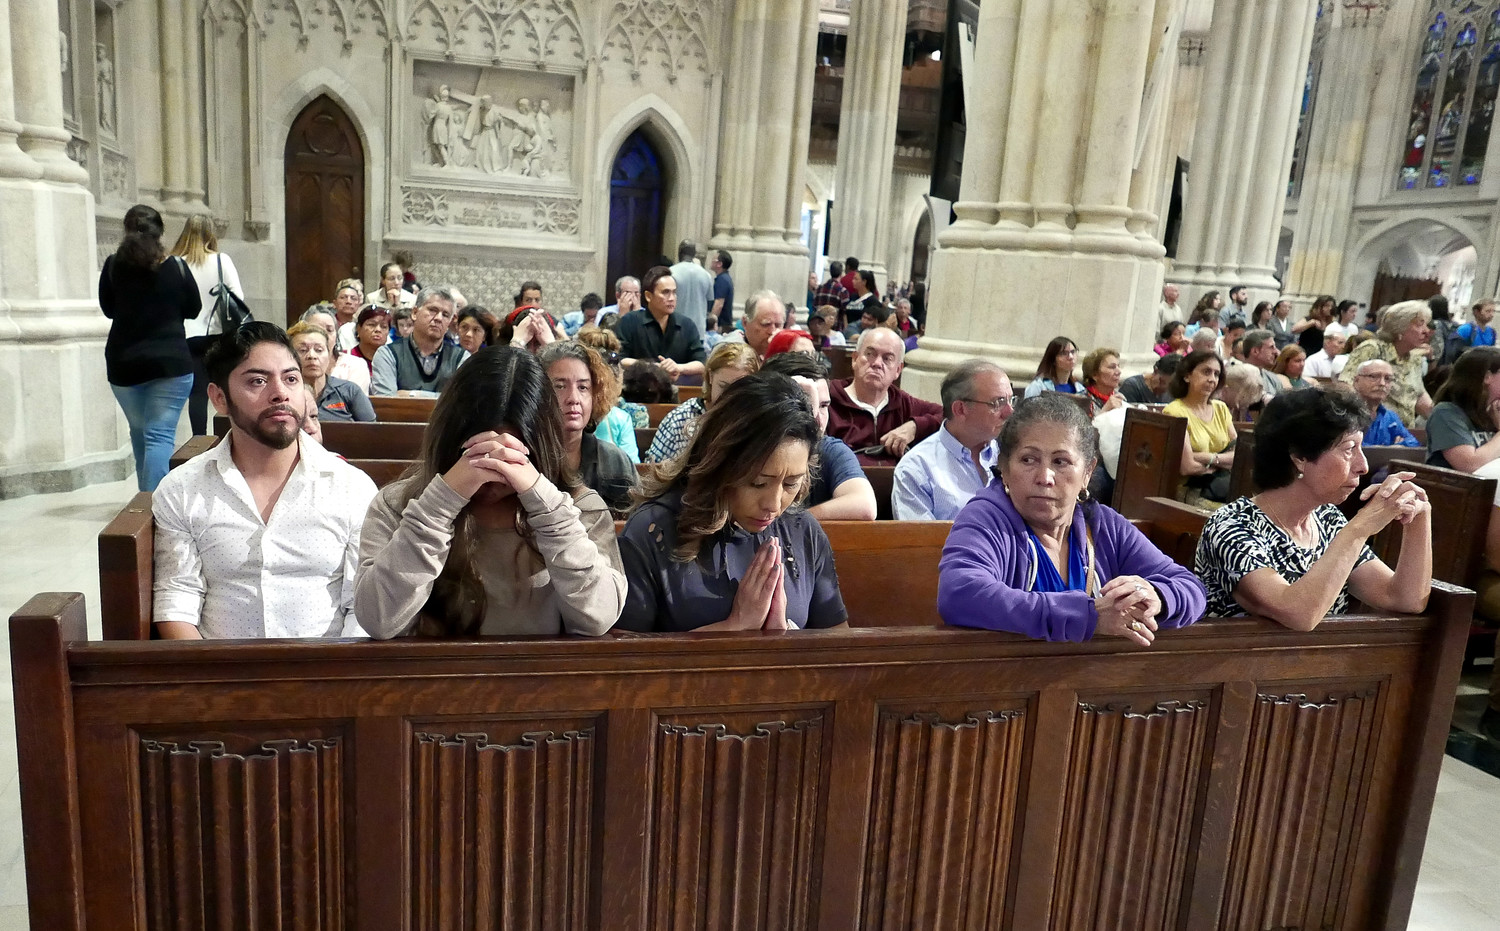 PRAYERS FOR OTHERS—The faithful pray in St. Patrick's Cathedral Oct. 8 at the Disaster Relief Mass Cardinal Dolan offered in Spanish after recent natural disasters in Puerto Rico, Mexico and Central America. More than 1,500 people participated in the afternoon liturgy.